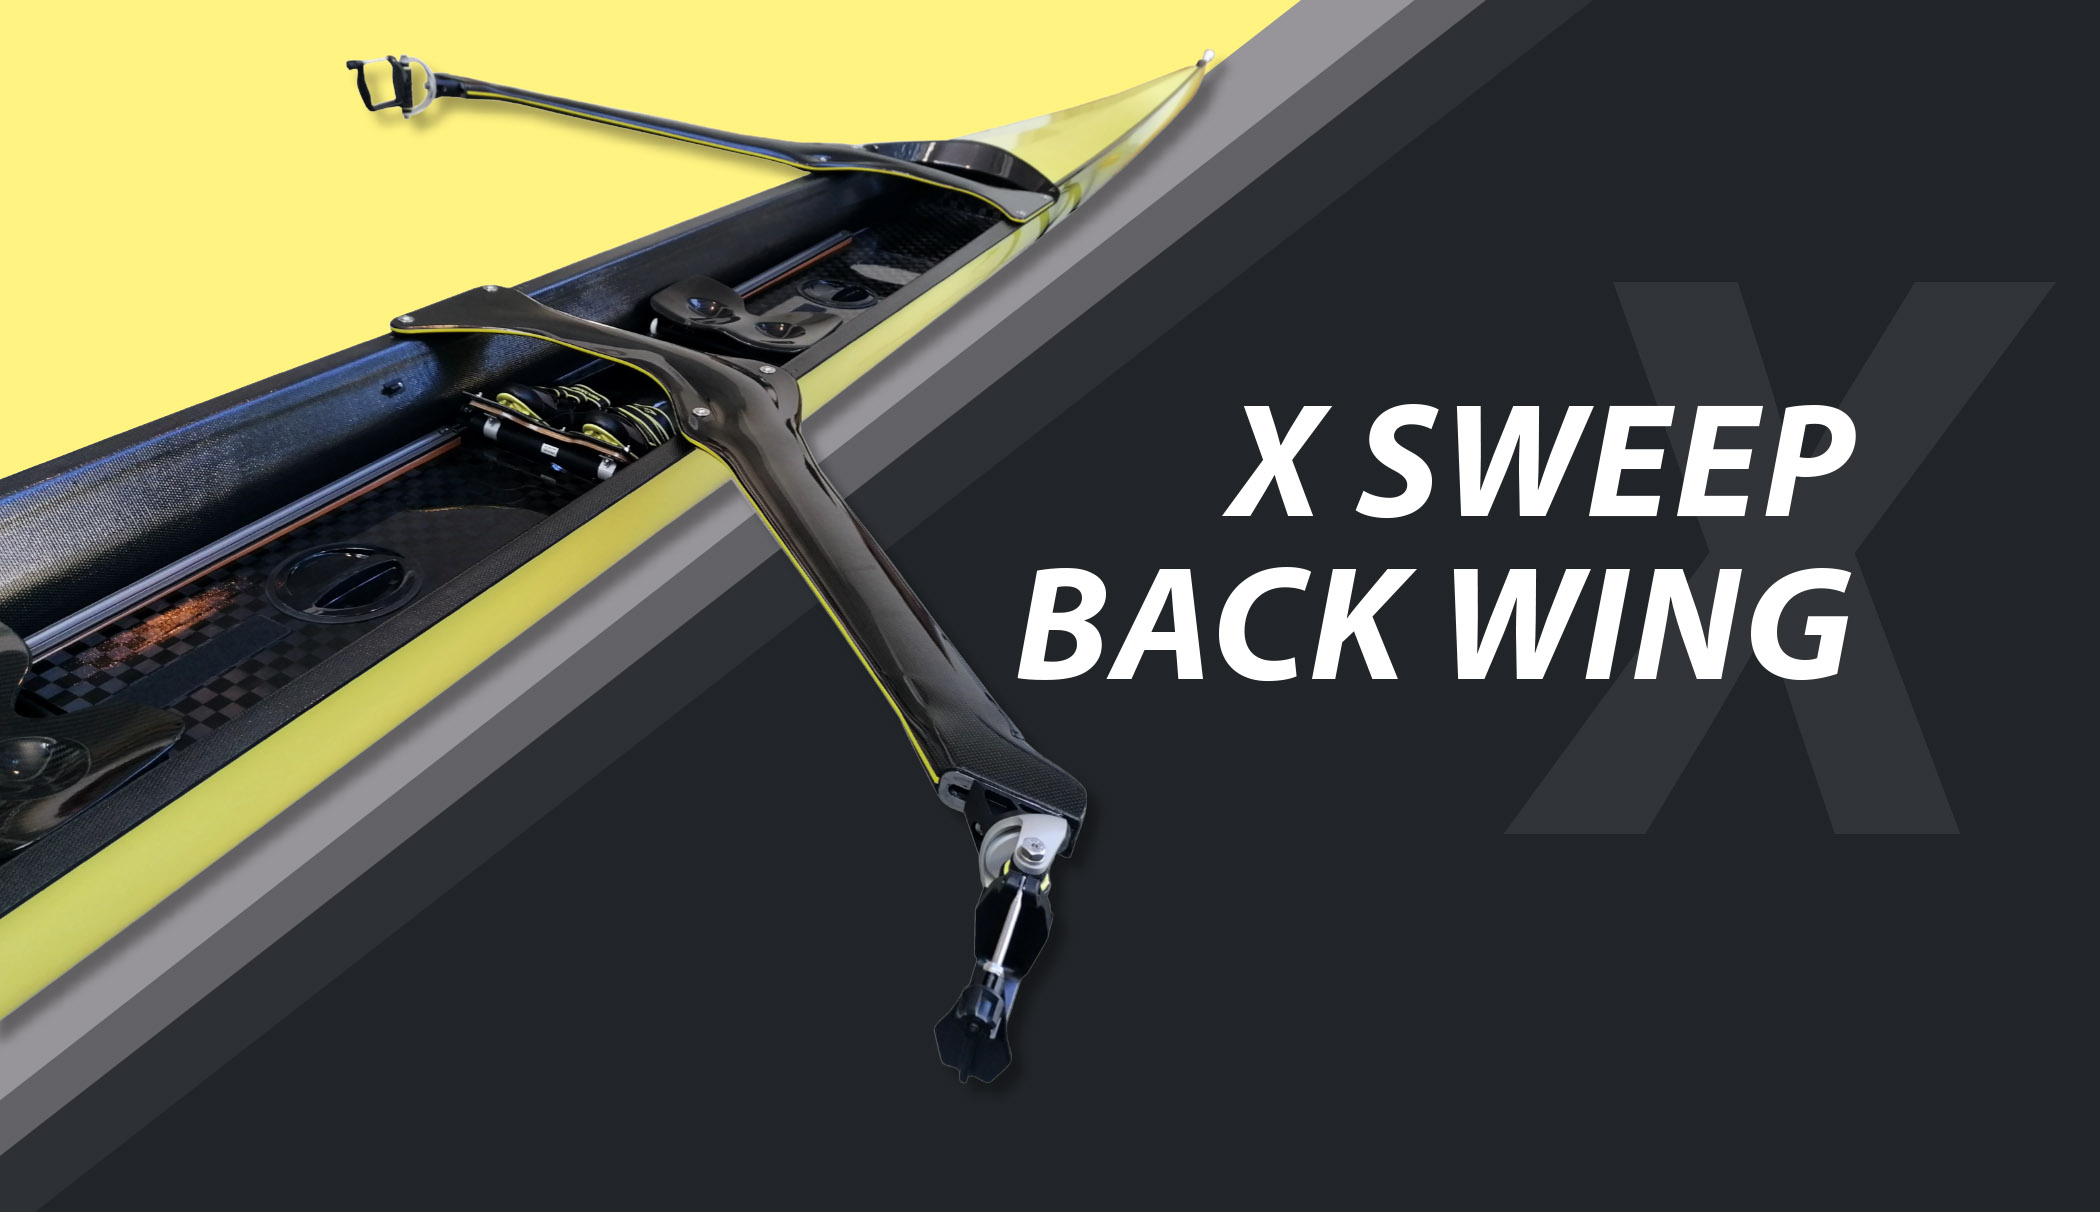 X sweep back wing